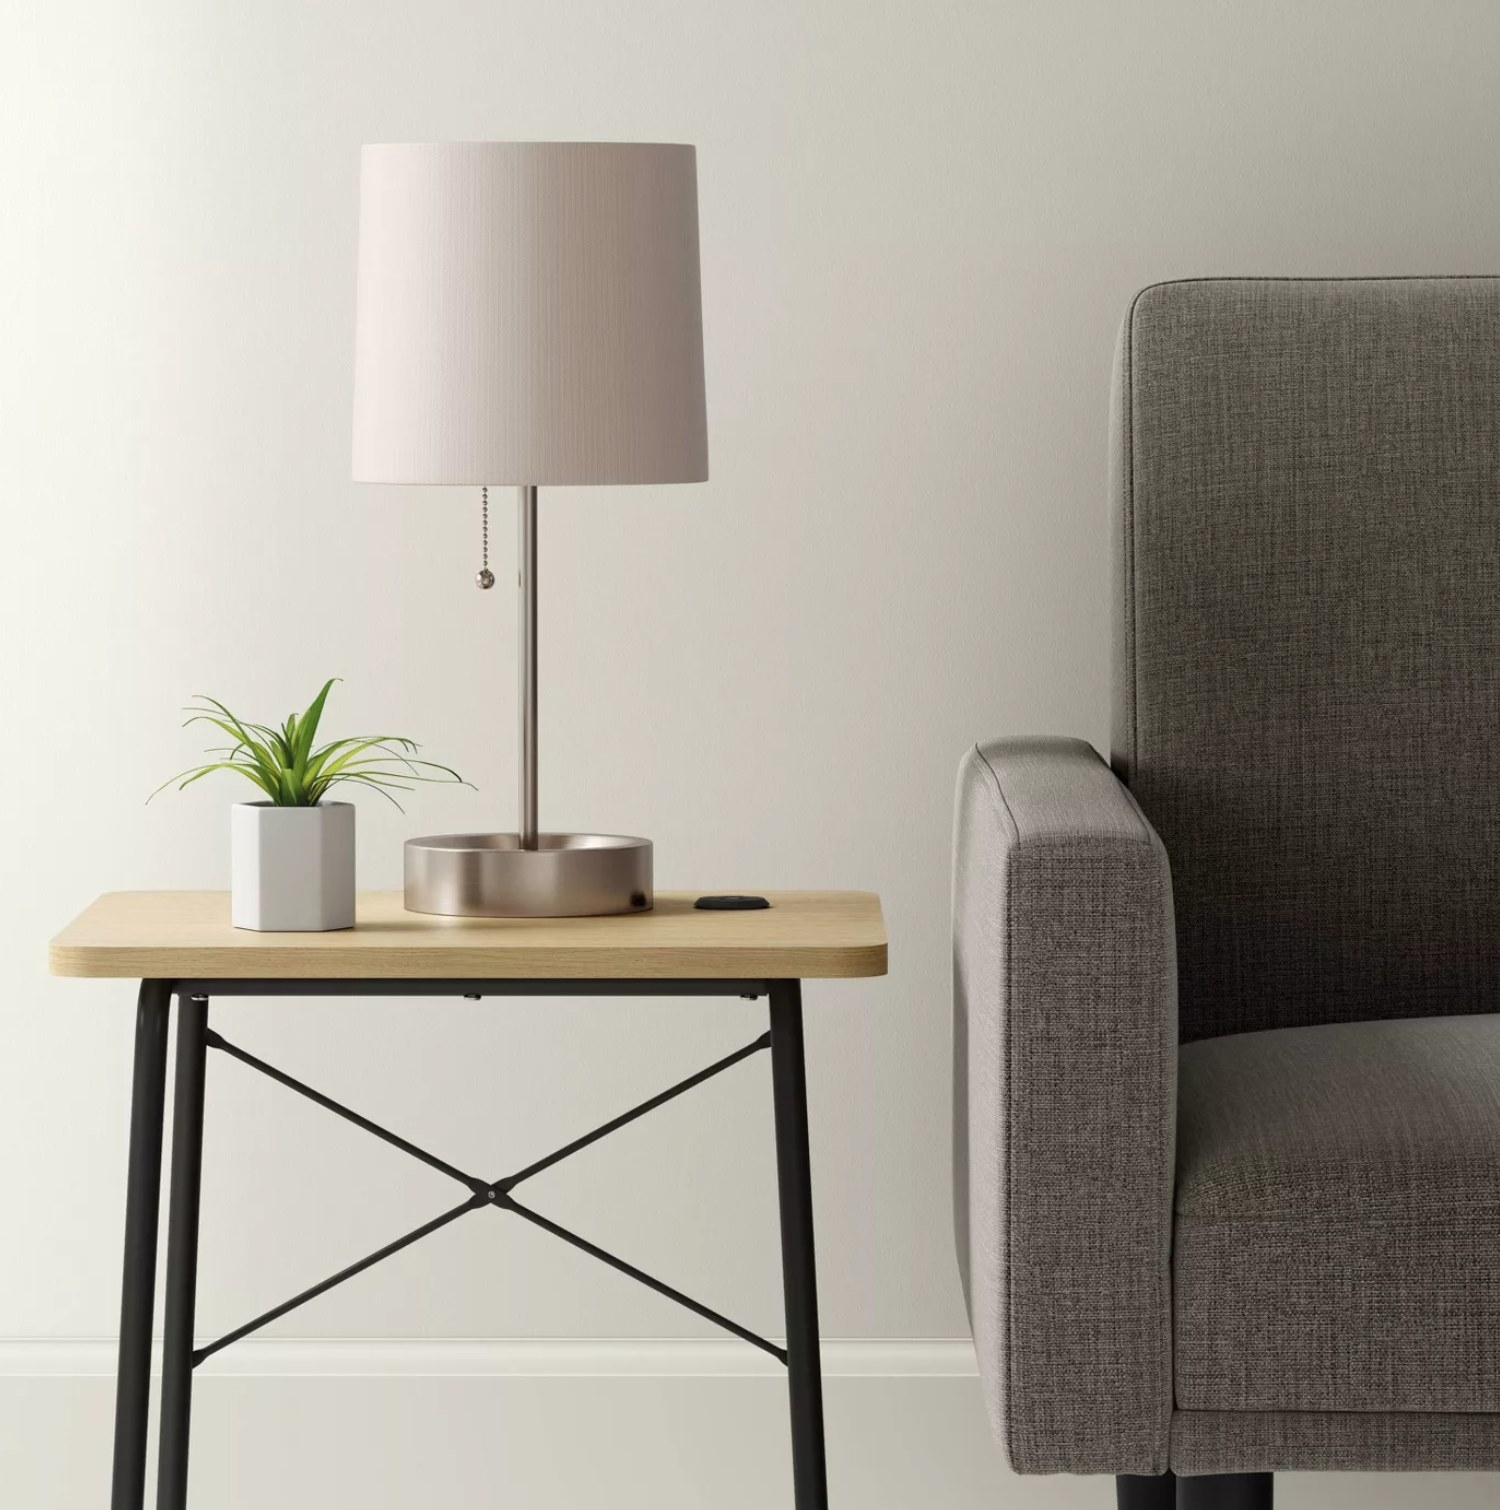 The lamp on a table next to a plant and the end of a couch